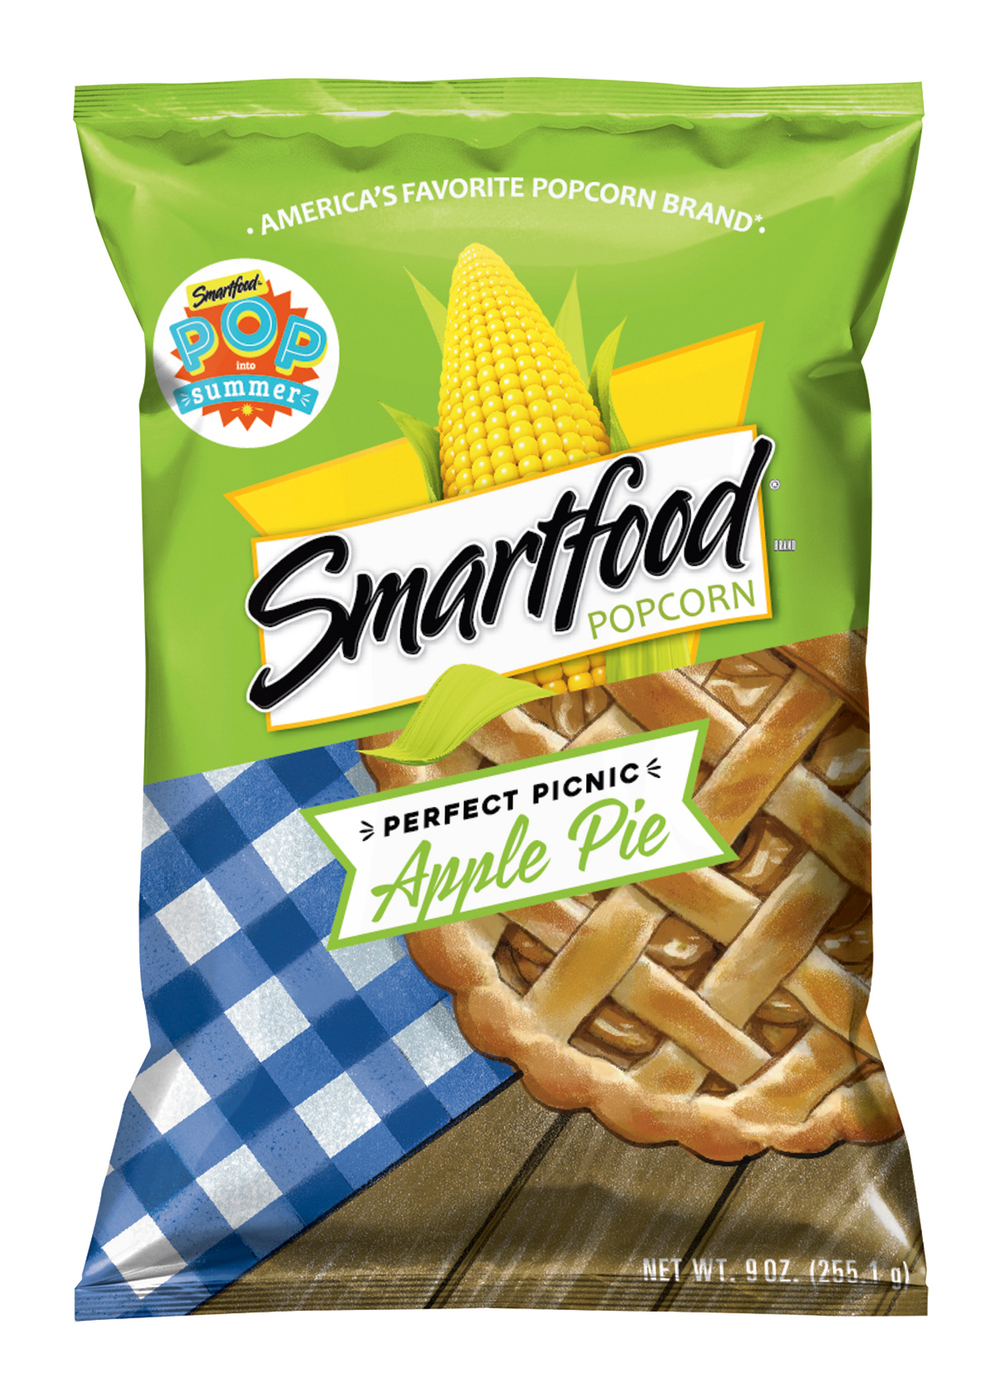 CD16453_Smartfood_SummerOfPopcorn_PACKAGING_V1_APPLEPIE_JB01.jpg